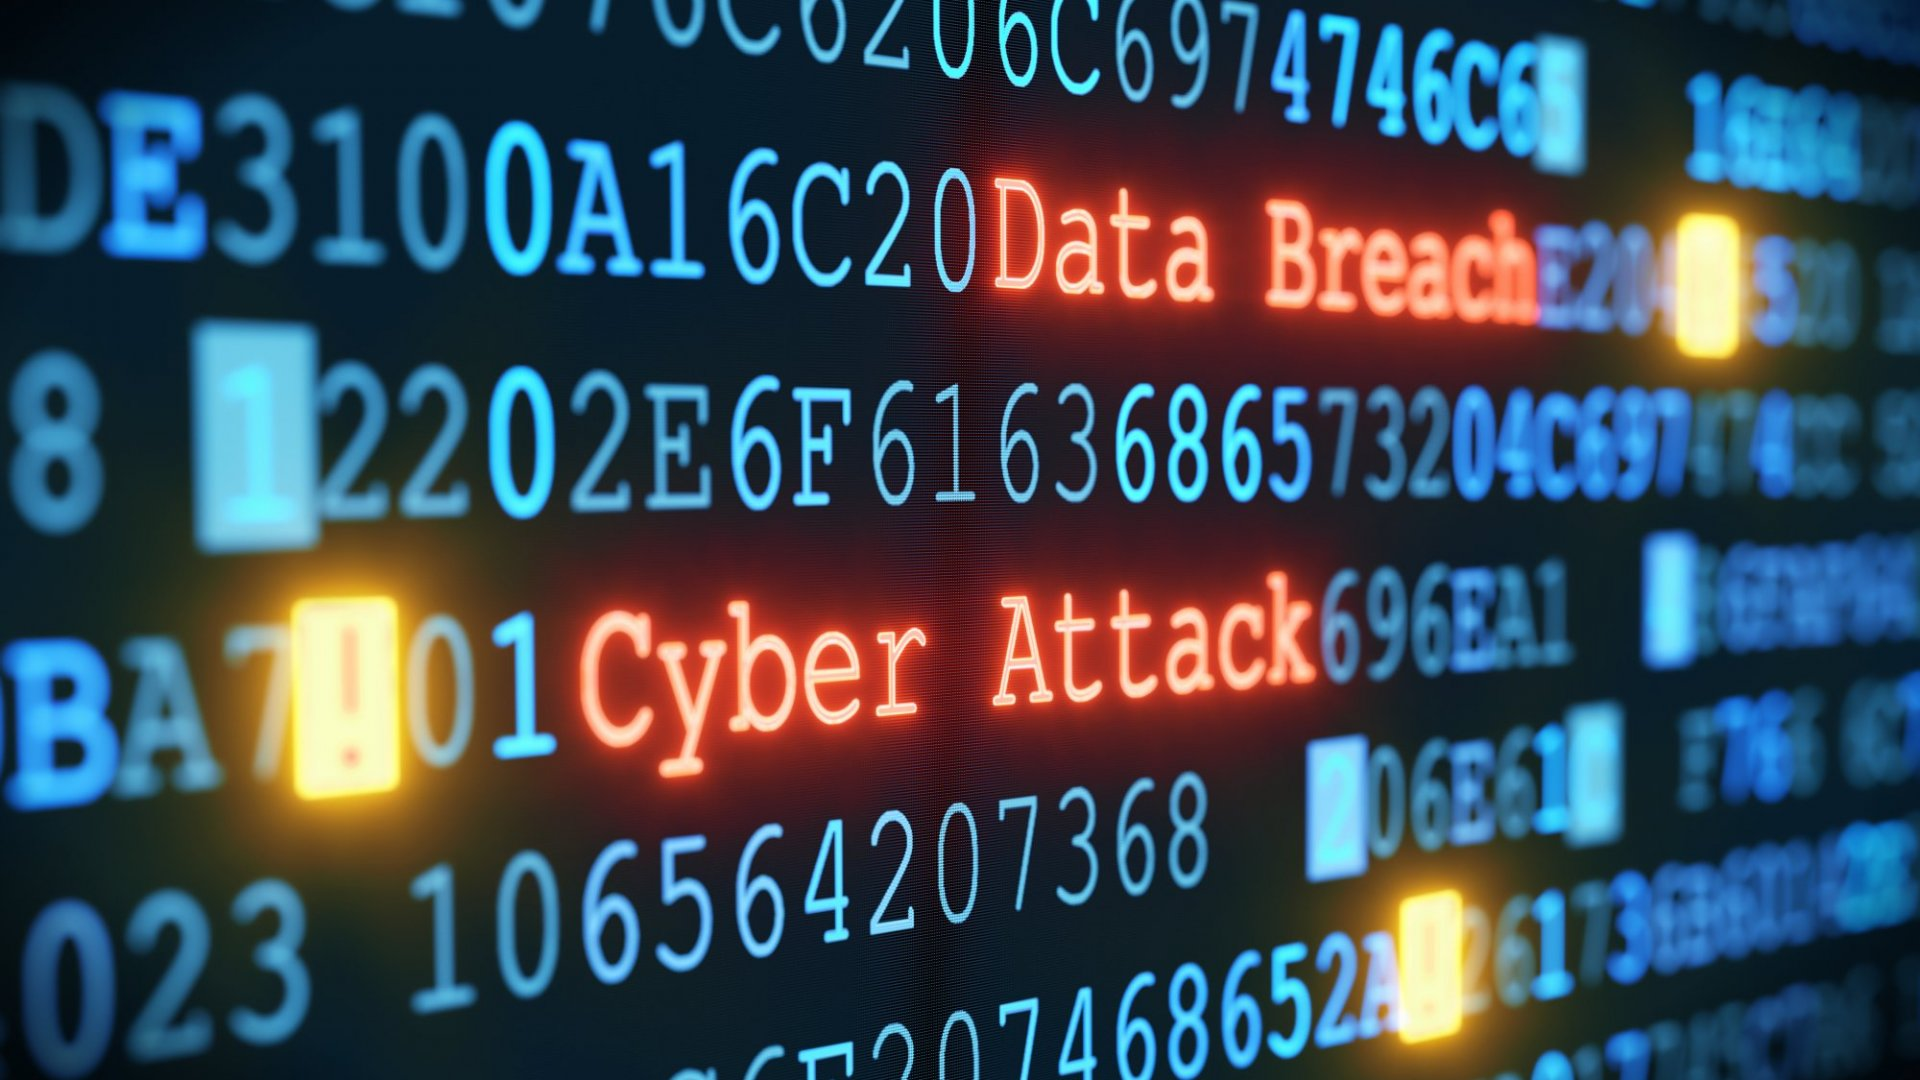 5 Ways to Protect Your Company from a Cyberattack